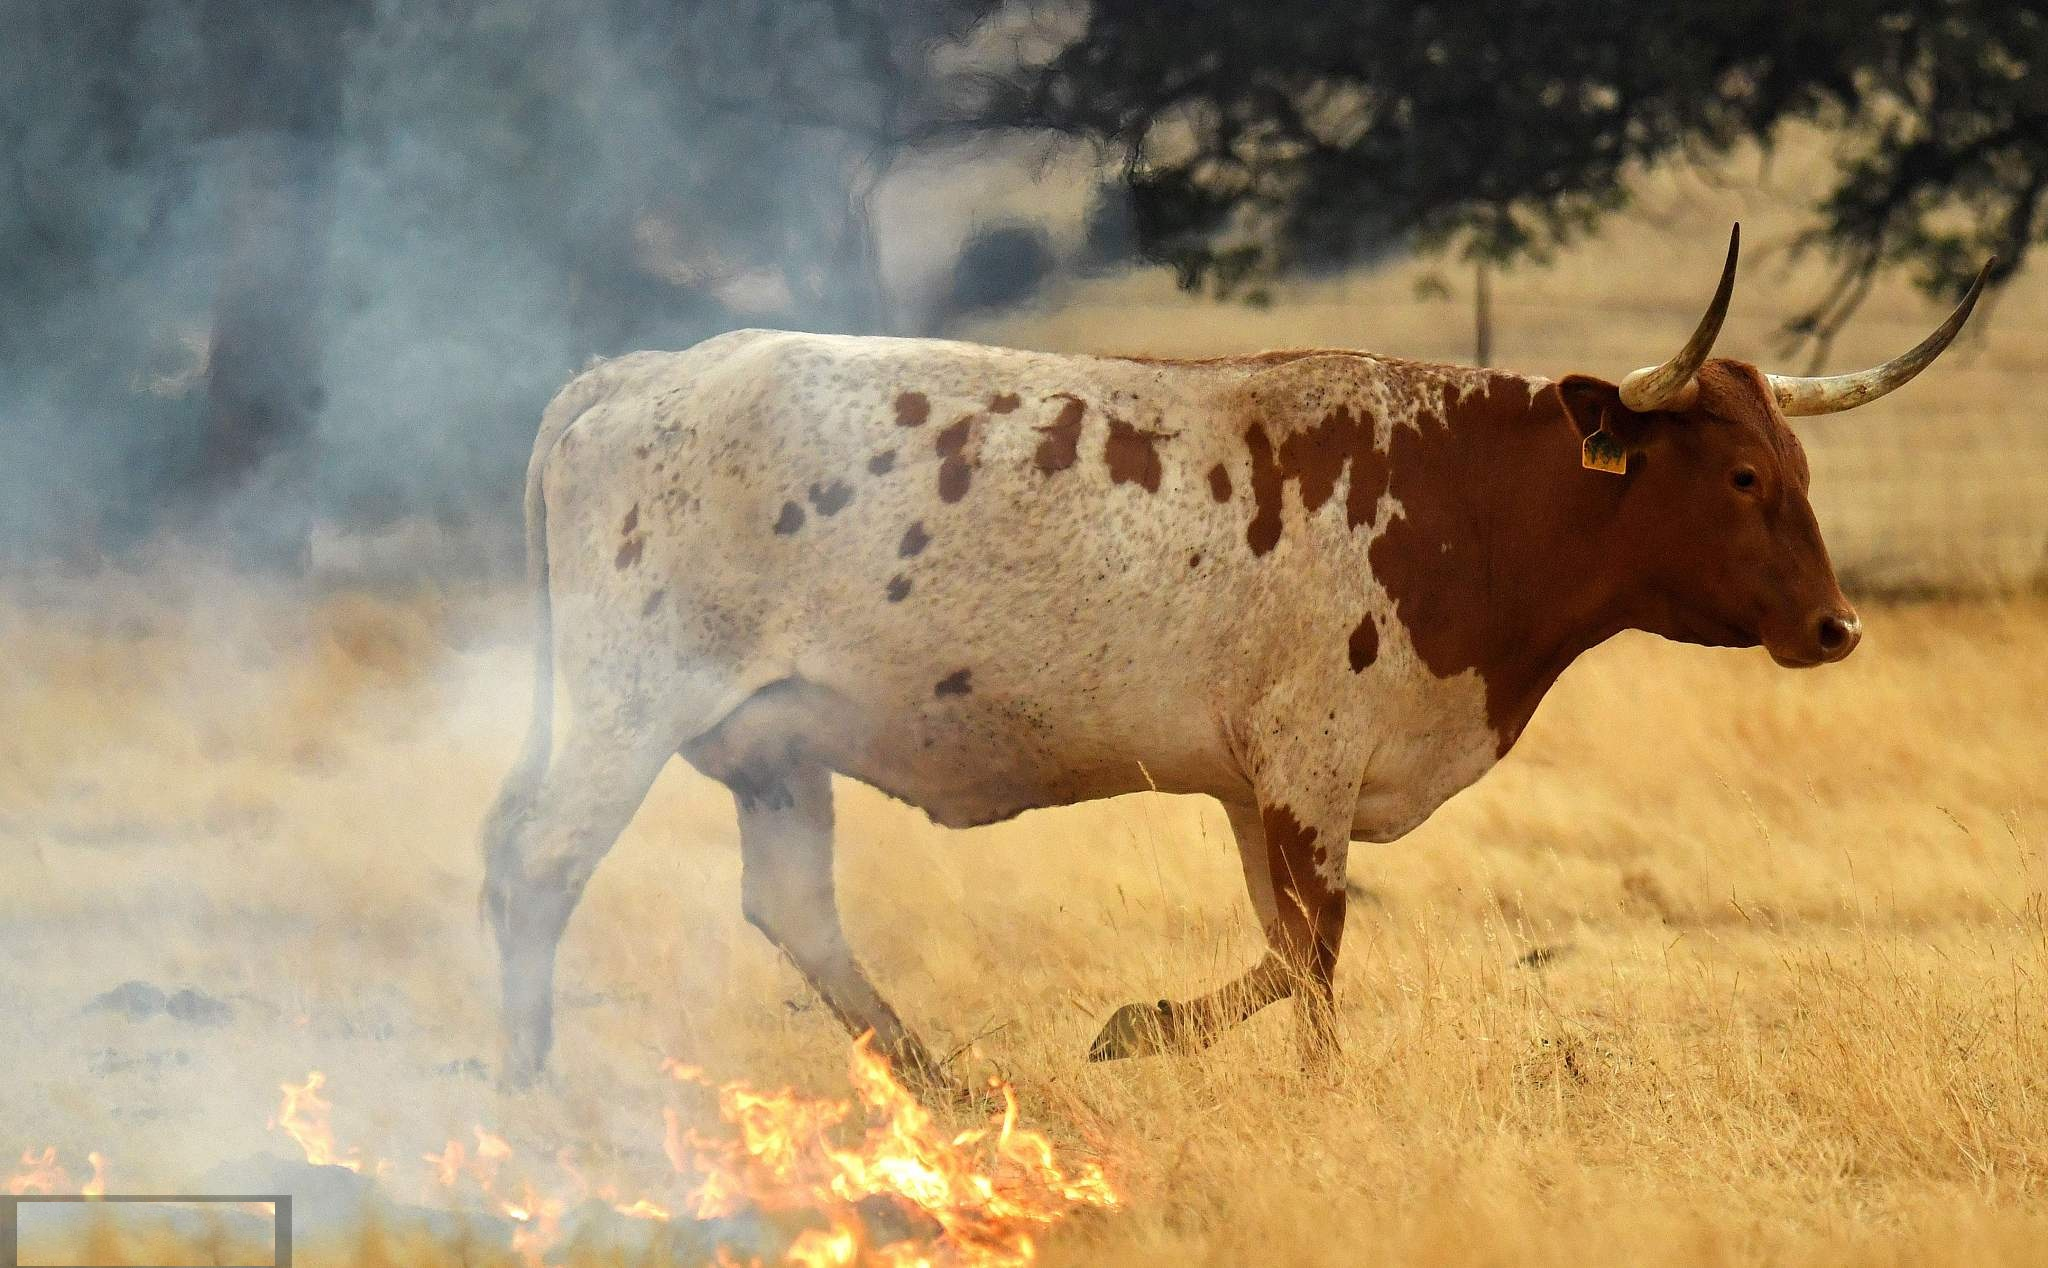 Cows trot through a burning pasture in California